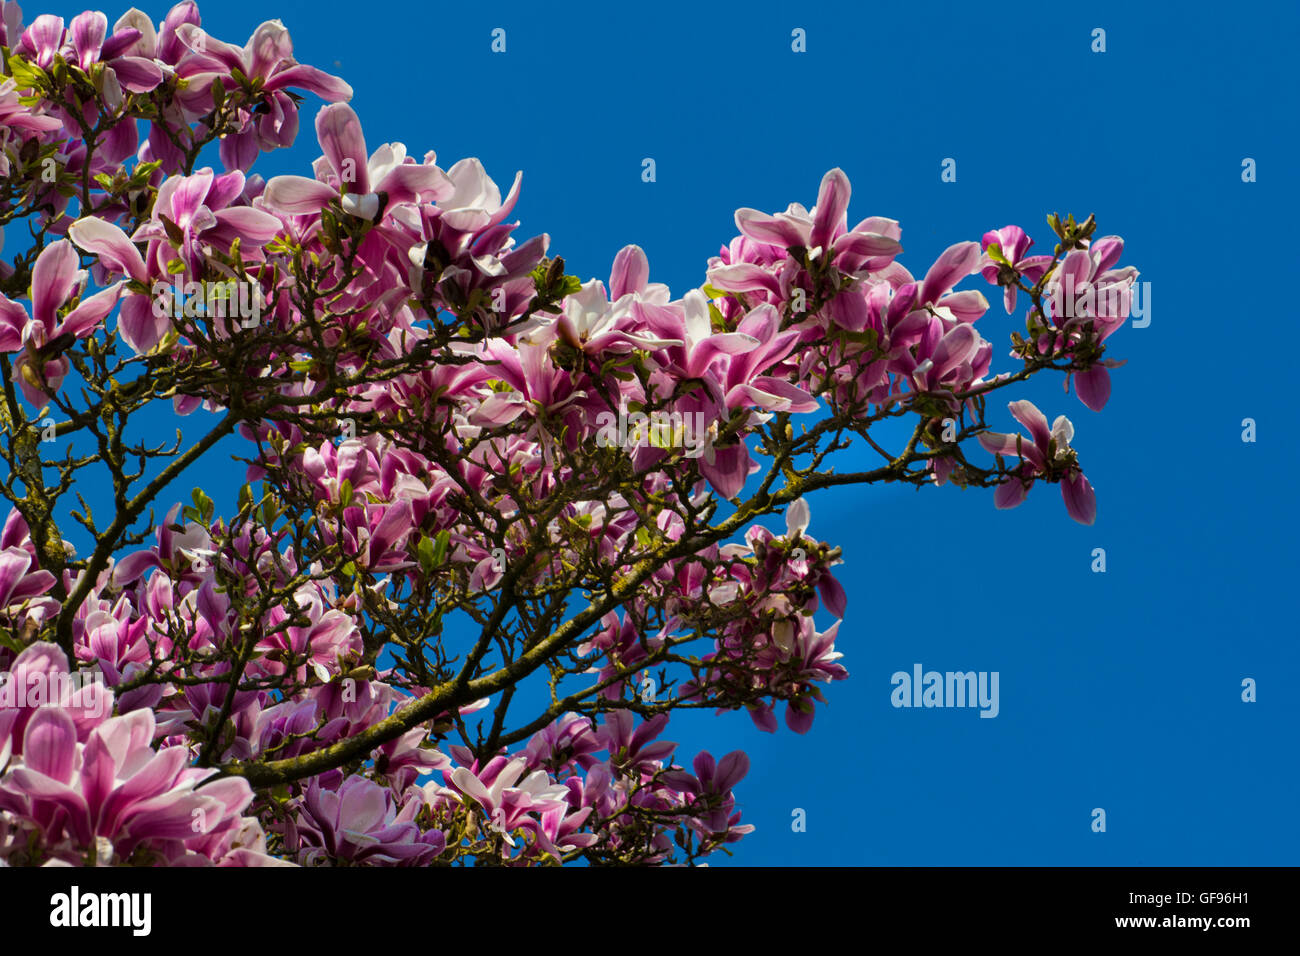 Branch of Pink Magnolia tree in blossom - Stock Image